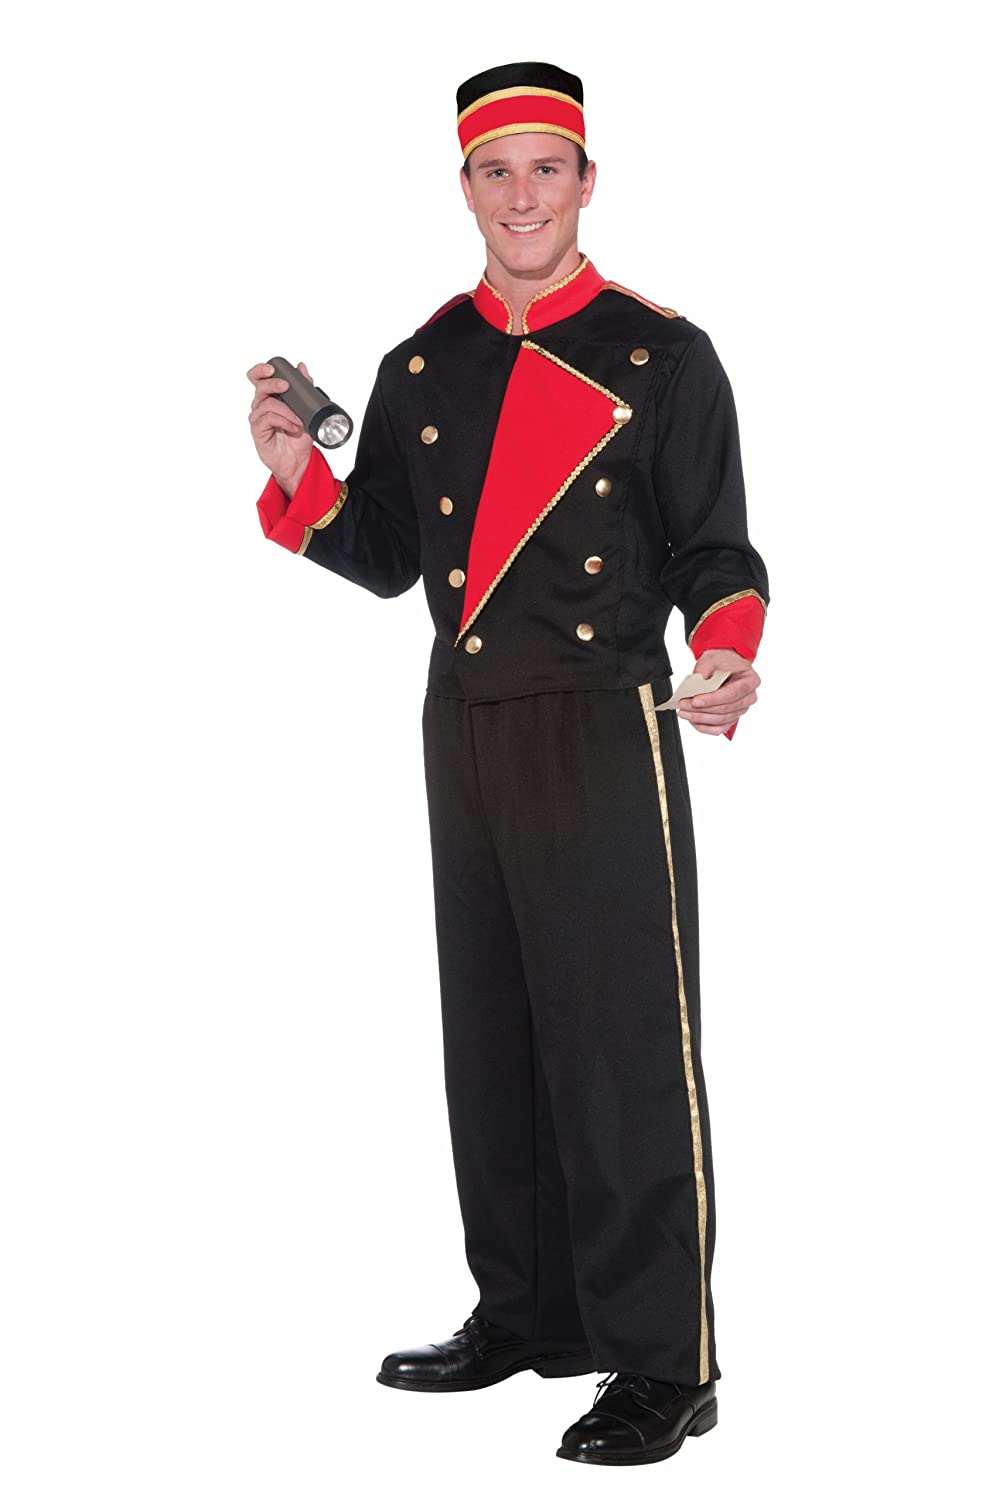 1930s Men's Costumes  Vintage Hollywood Movie Usher Costume $23.57 AT vintagedancer.com